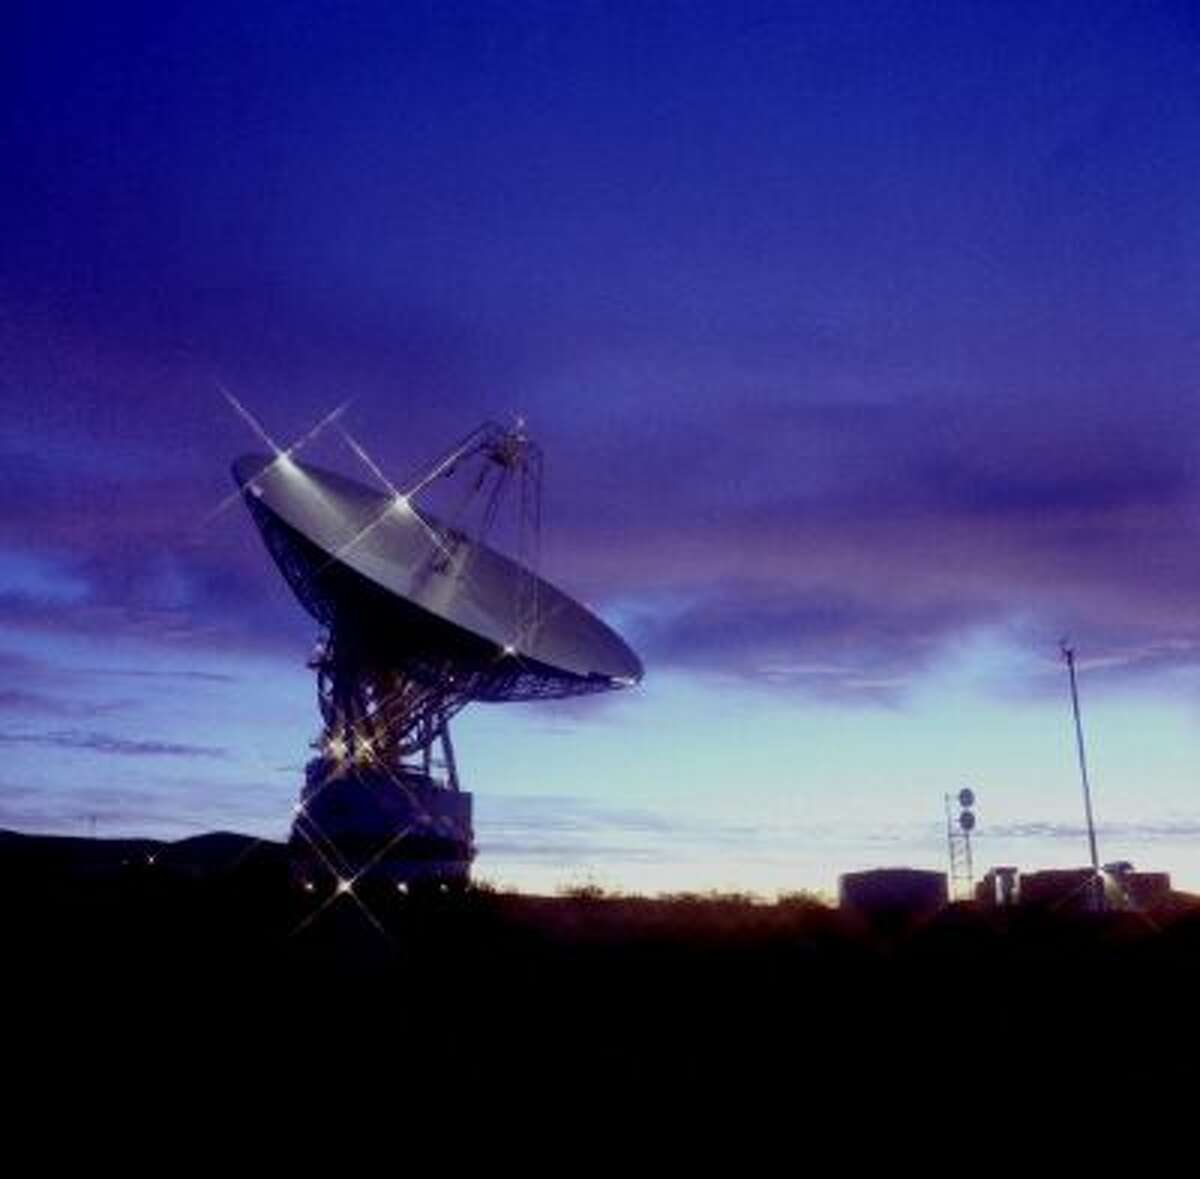 The NASA Deep Space Network is a network of antennas that supports interplanetary spacecraft missions and radar astronomy observations to explore the deeper universe. It turns 50 Christmas Eve.